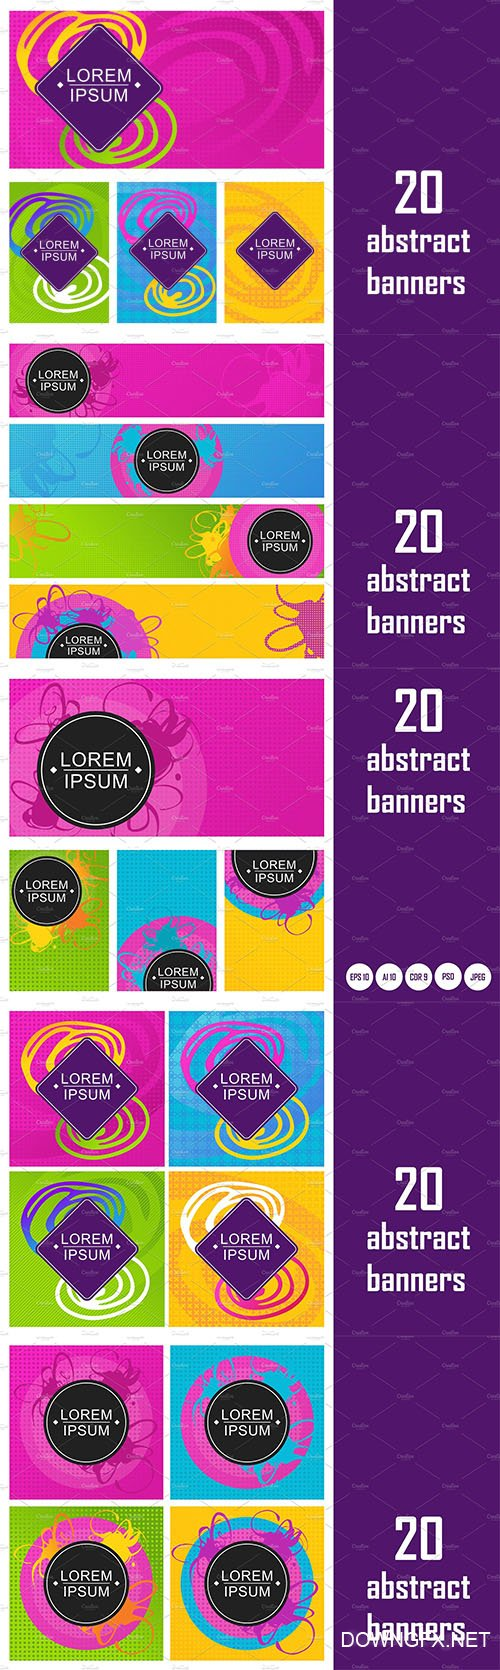 20 abstract bright neon banners - CM 2175105